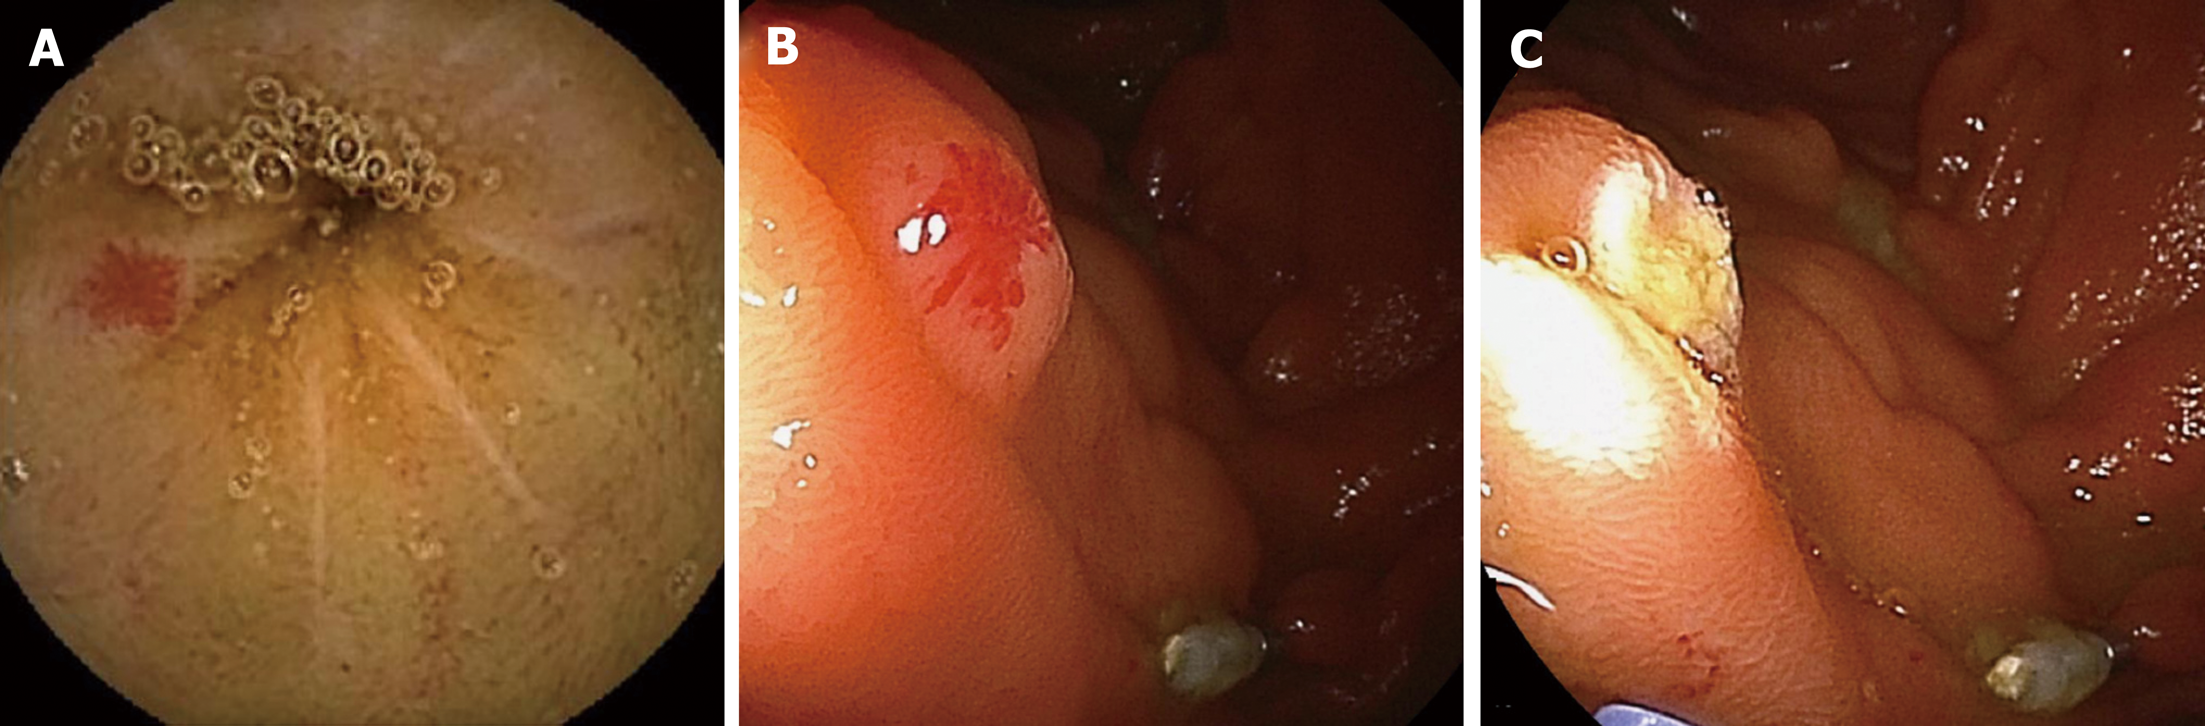 Diagnosis and therapeutic strategies for small bowel vascular lesions